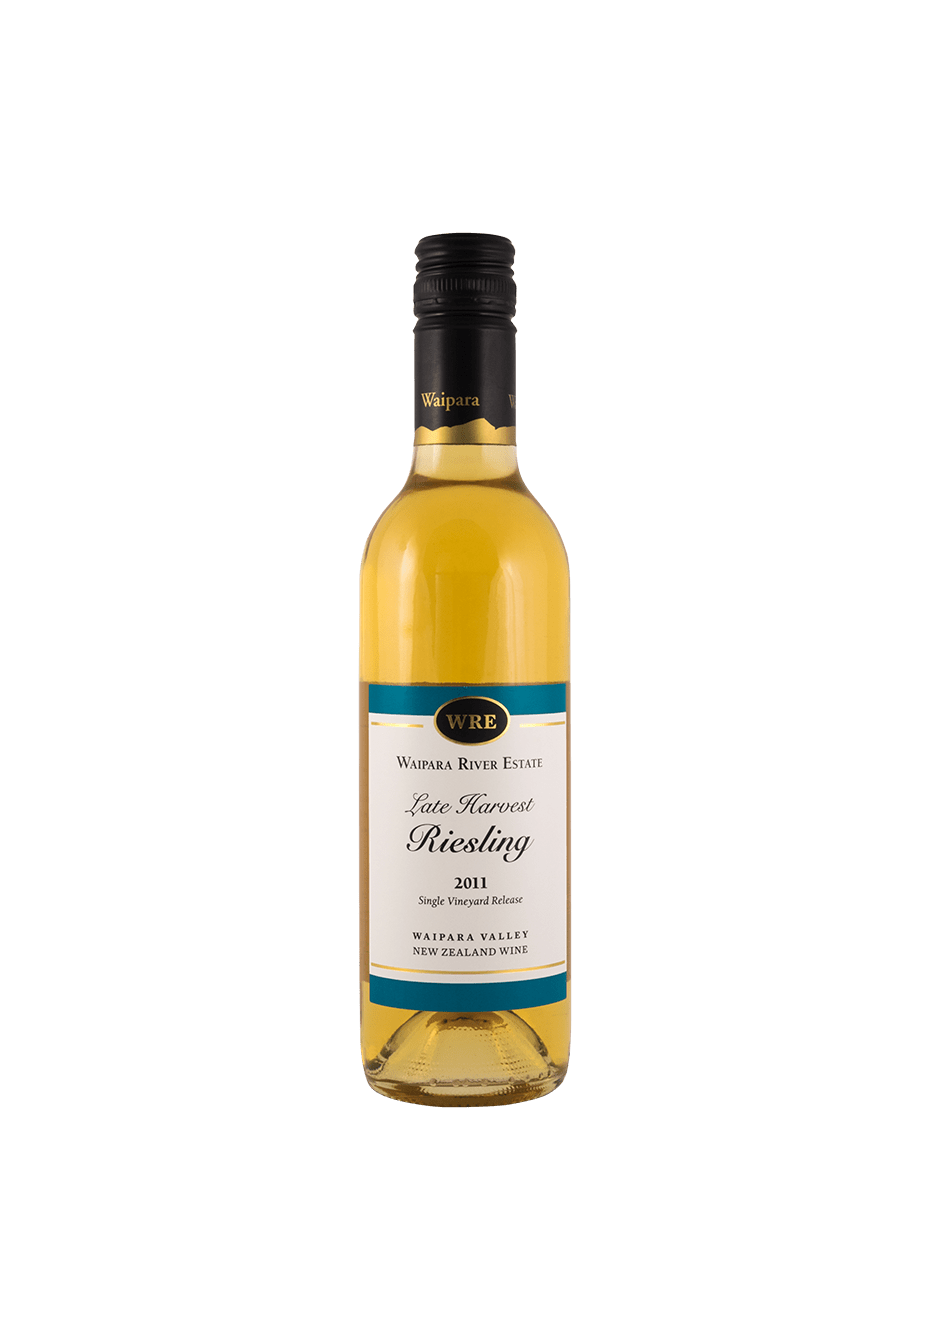 Waipara River Estate 'Single Vineyard' Late Harvest Riesling 2011 (375 ml bottle)